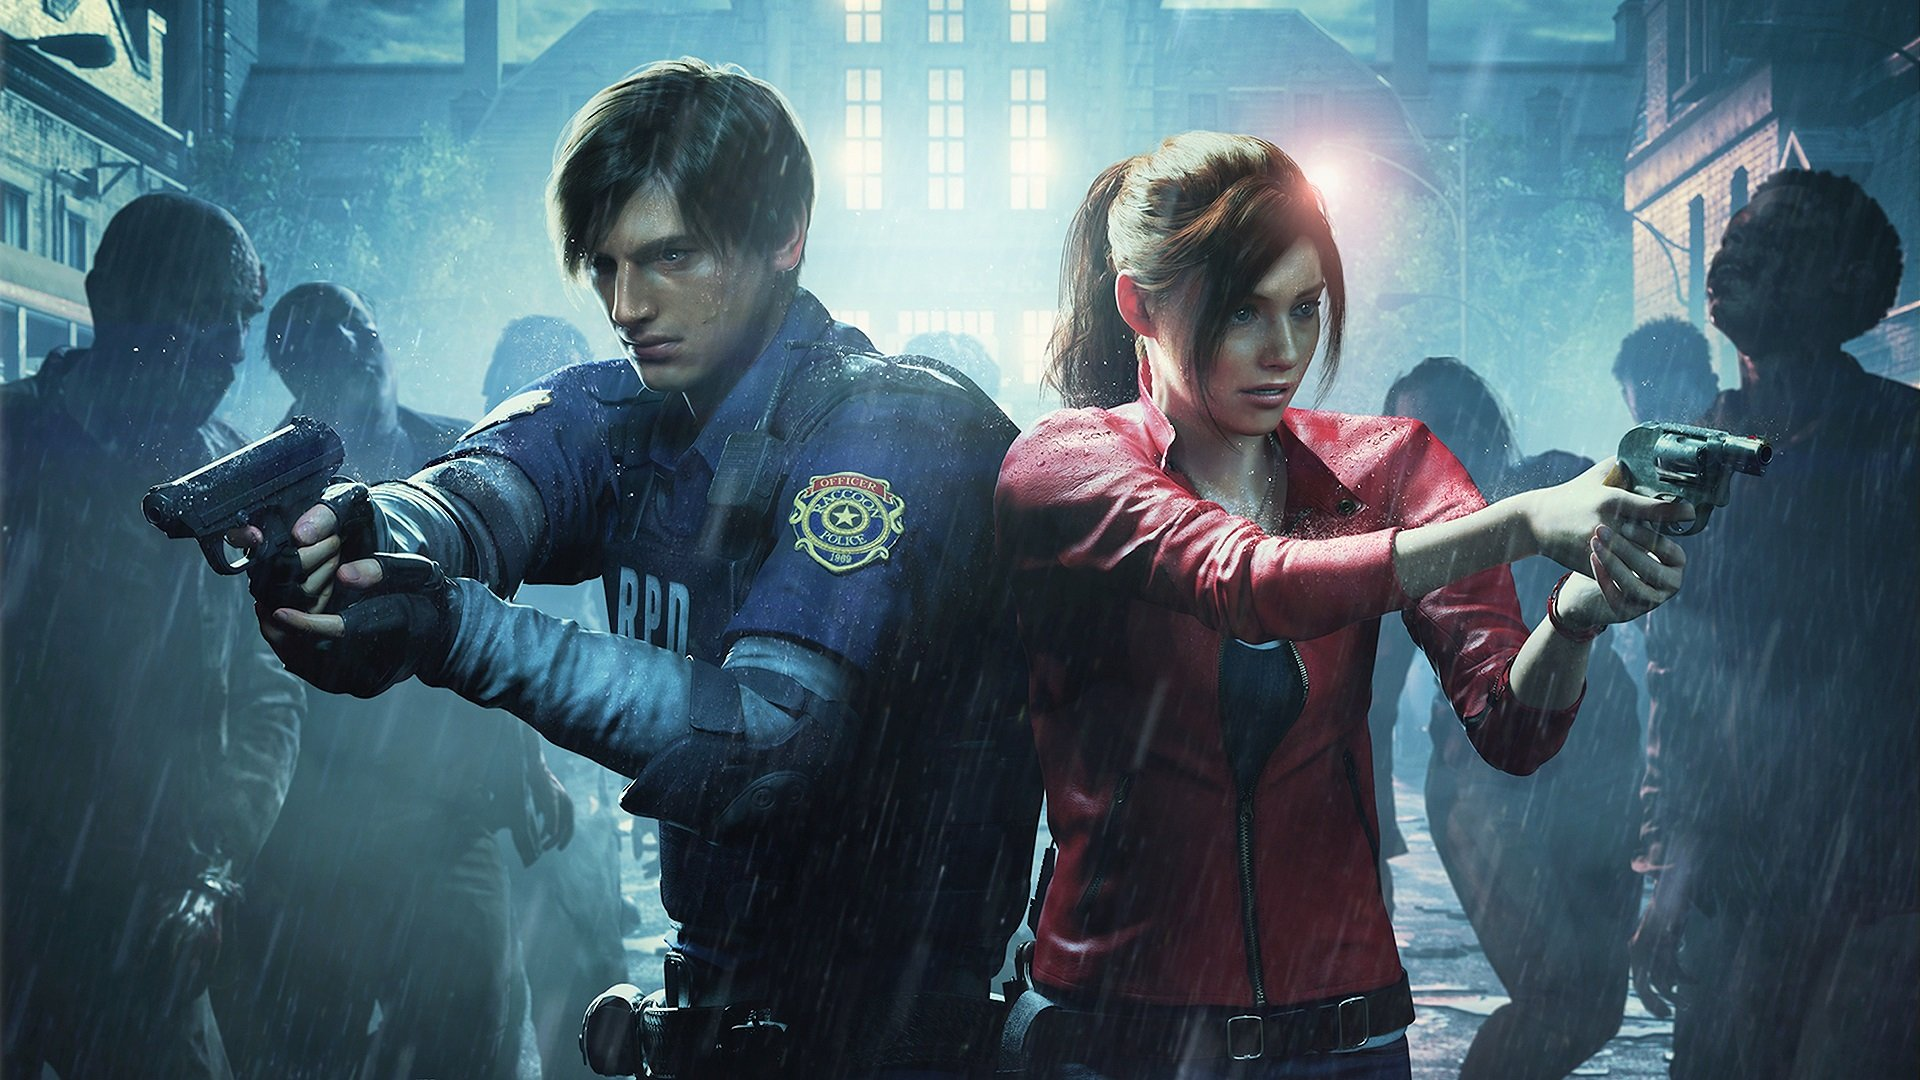 Resident Evil 2 Remake coming in January 2019